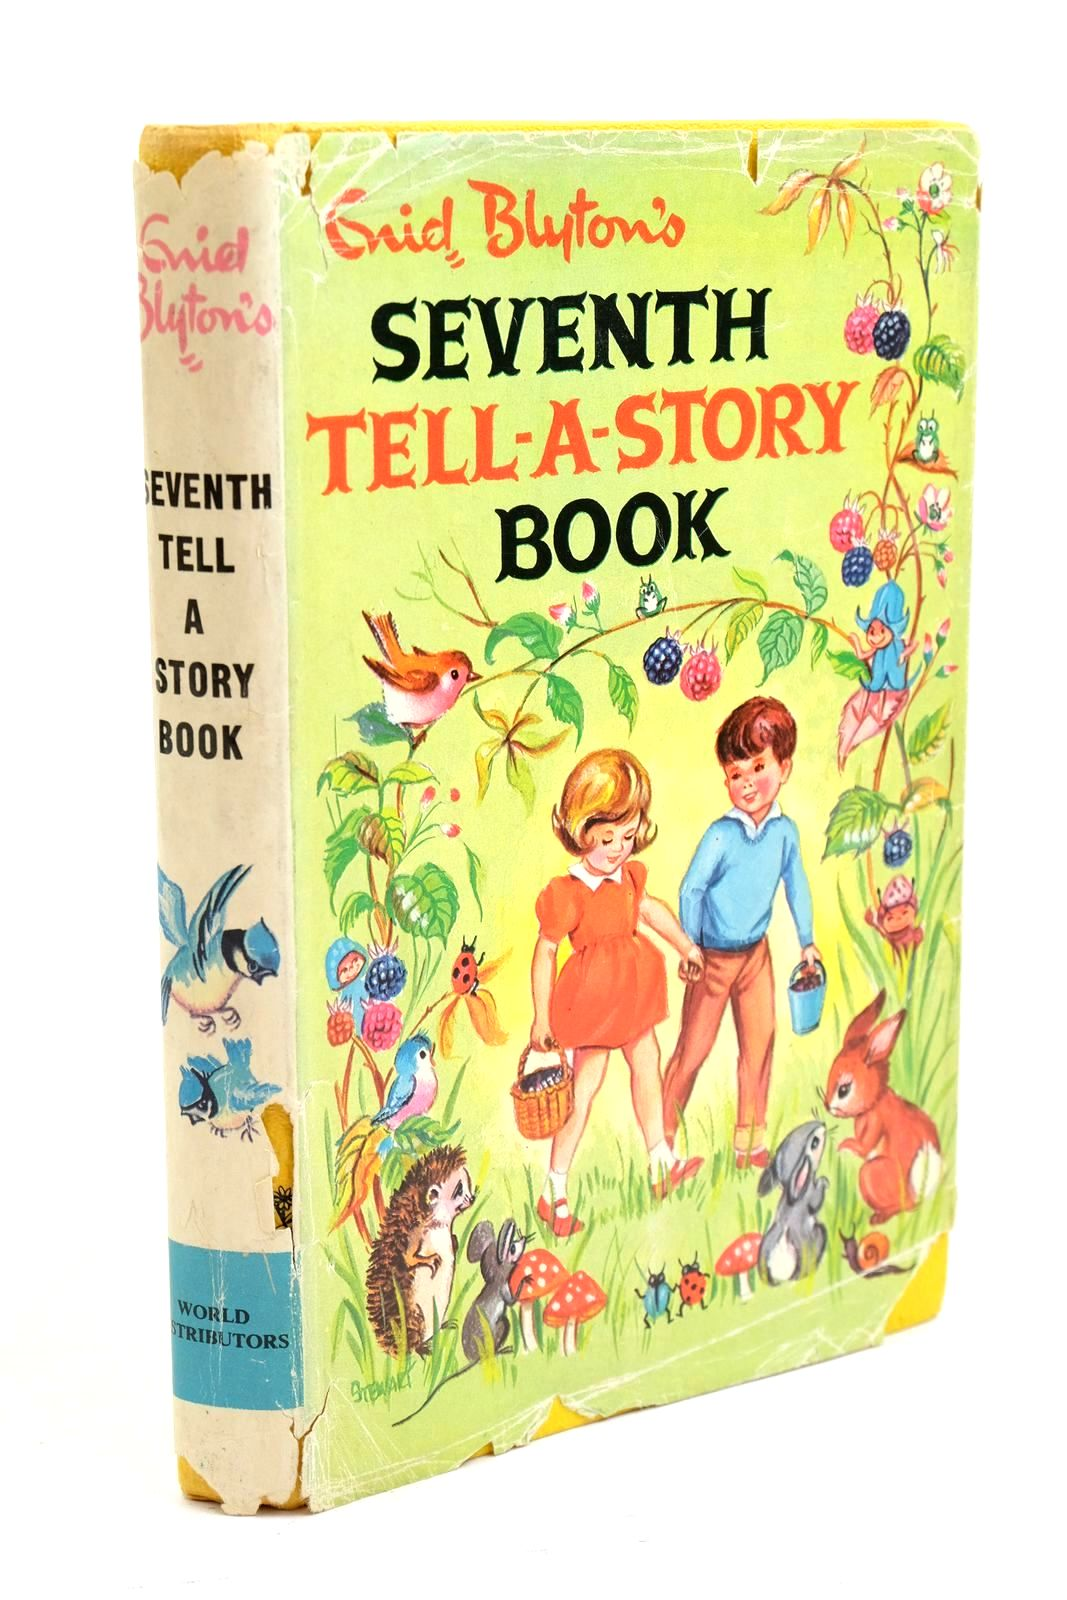 Photo of ENID BLYTON'S SEVENTH TELL-A-STORY BOOK- Stock Number: 1321090